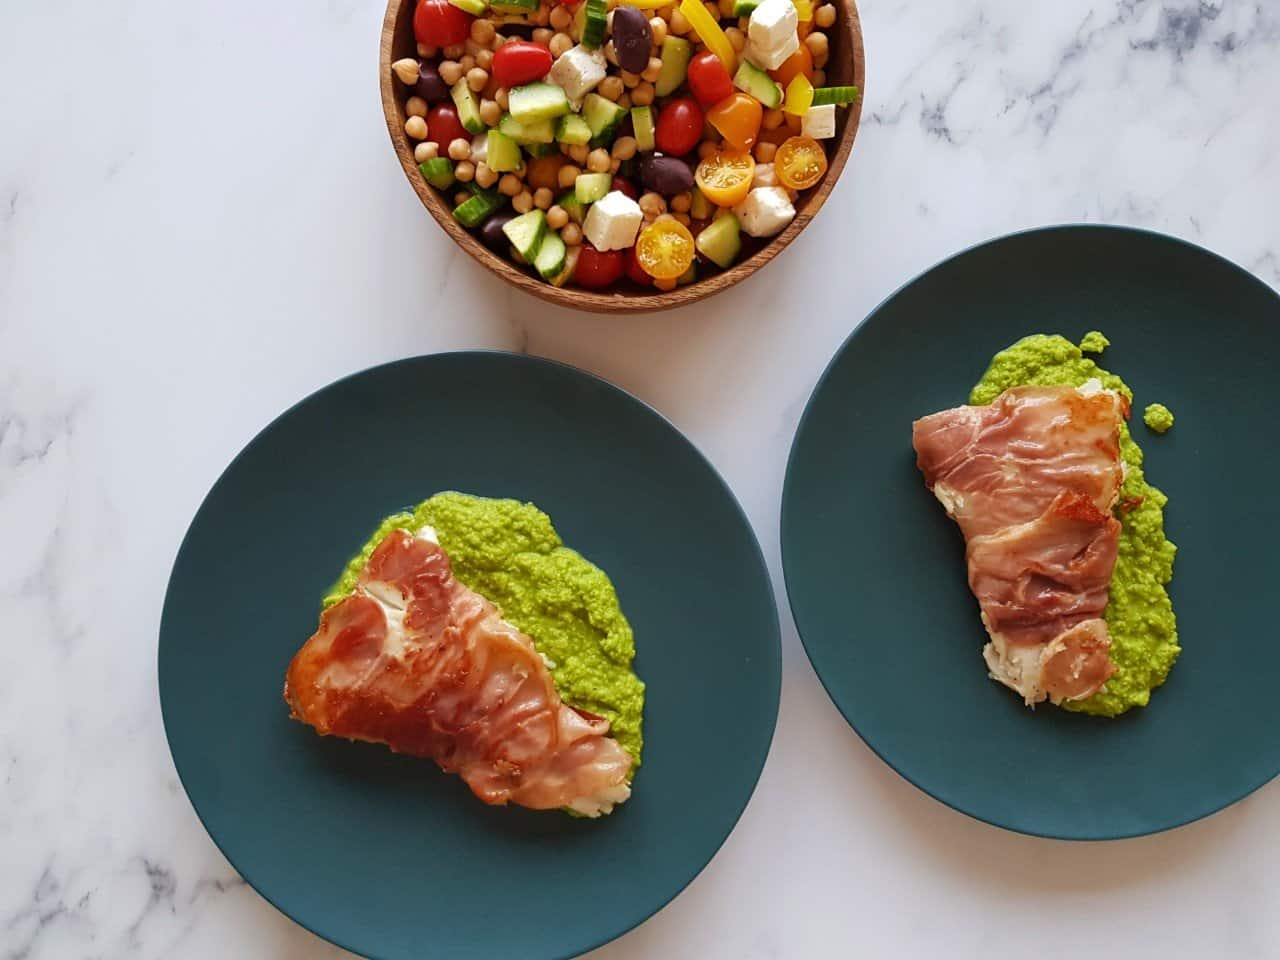 Cod wrapped in prosciutto with peas